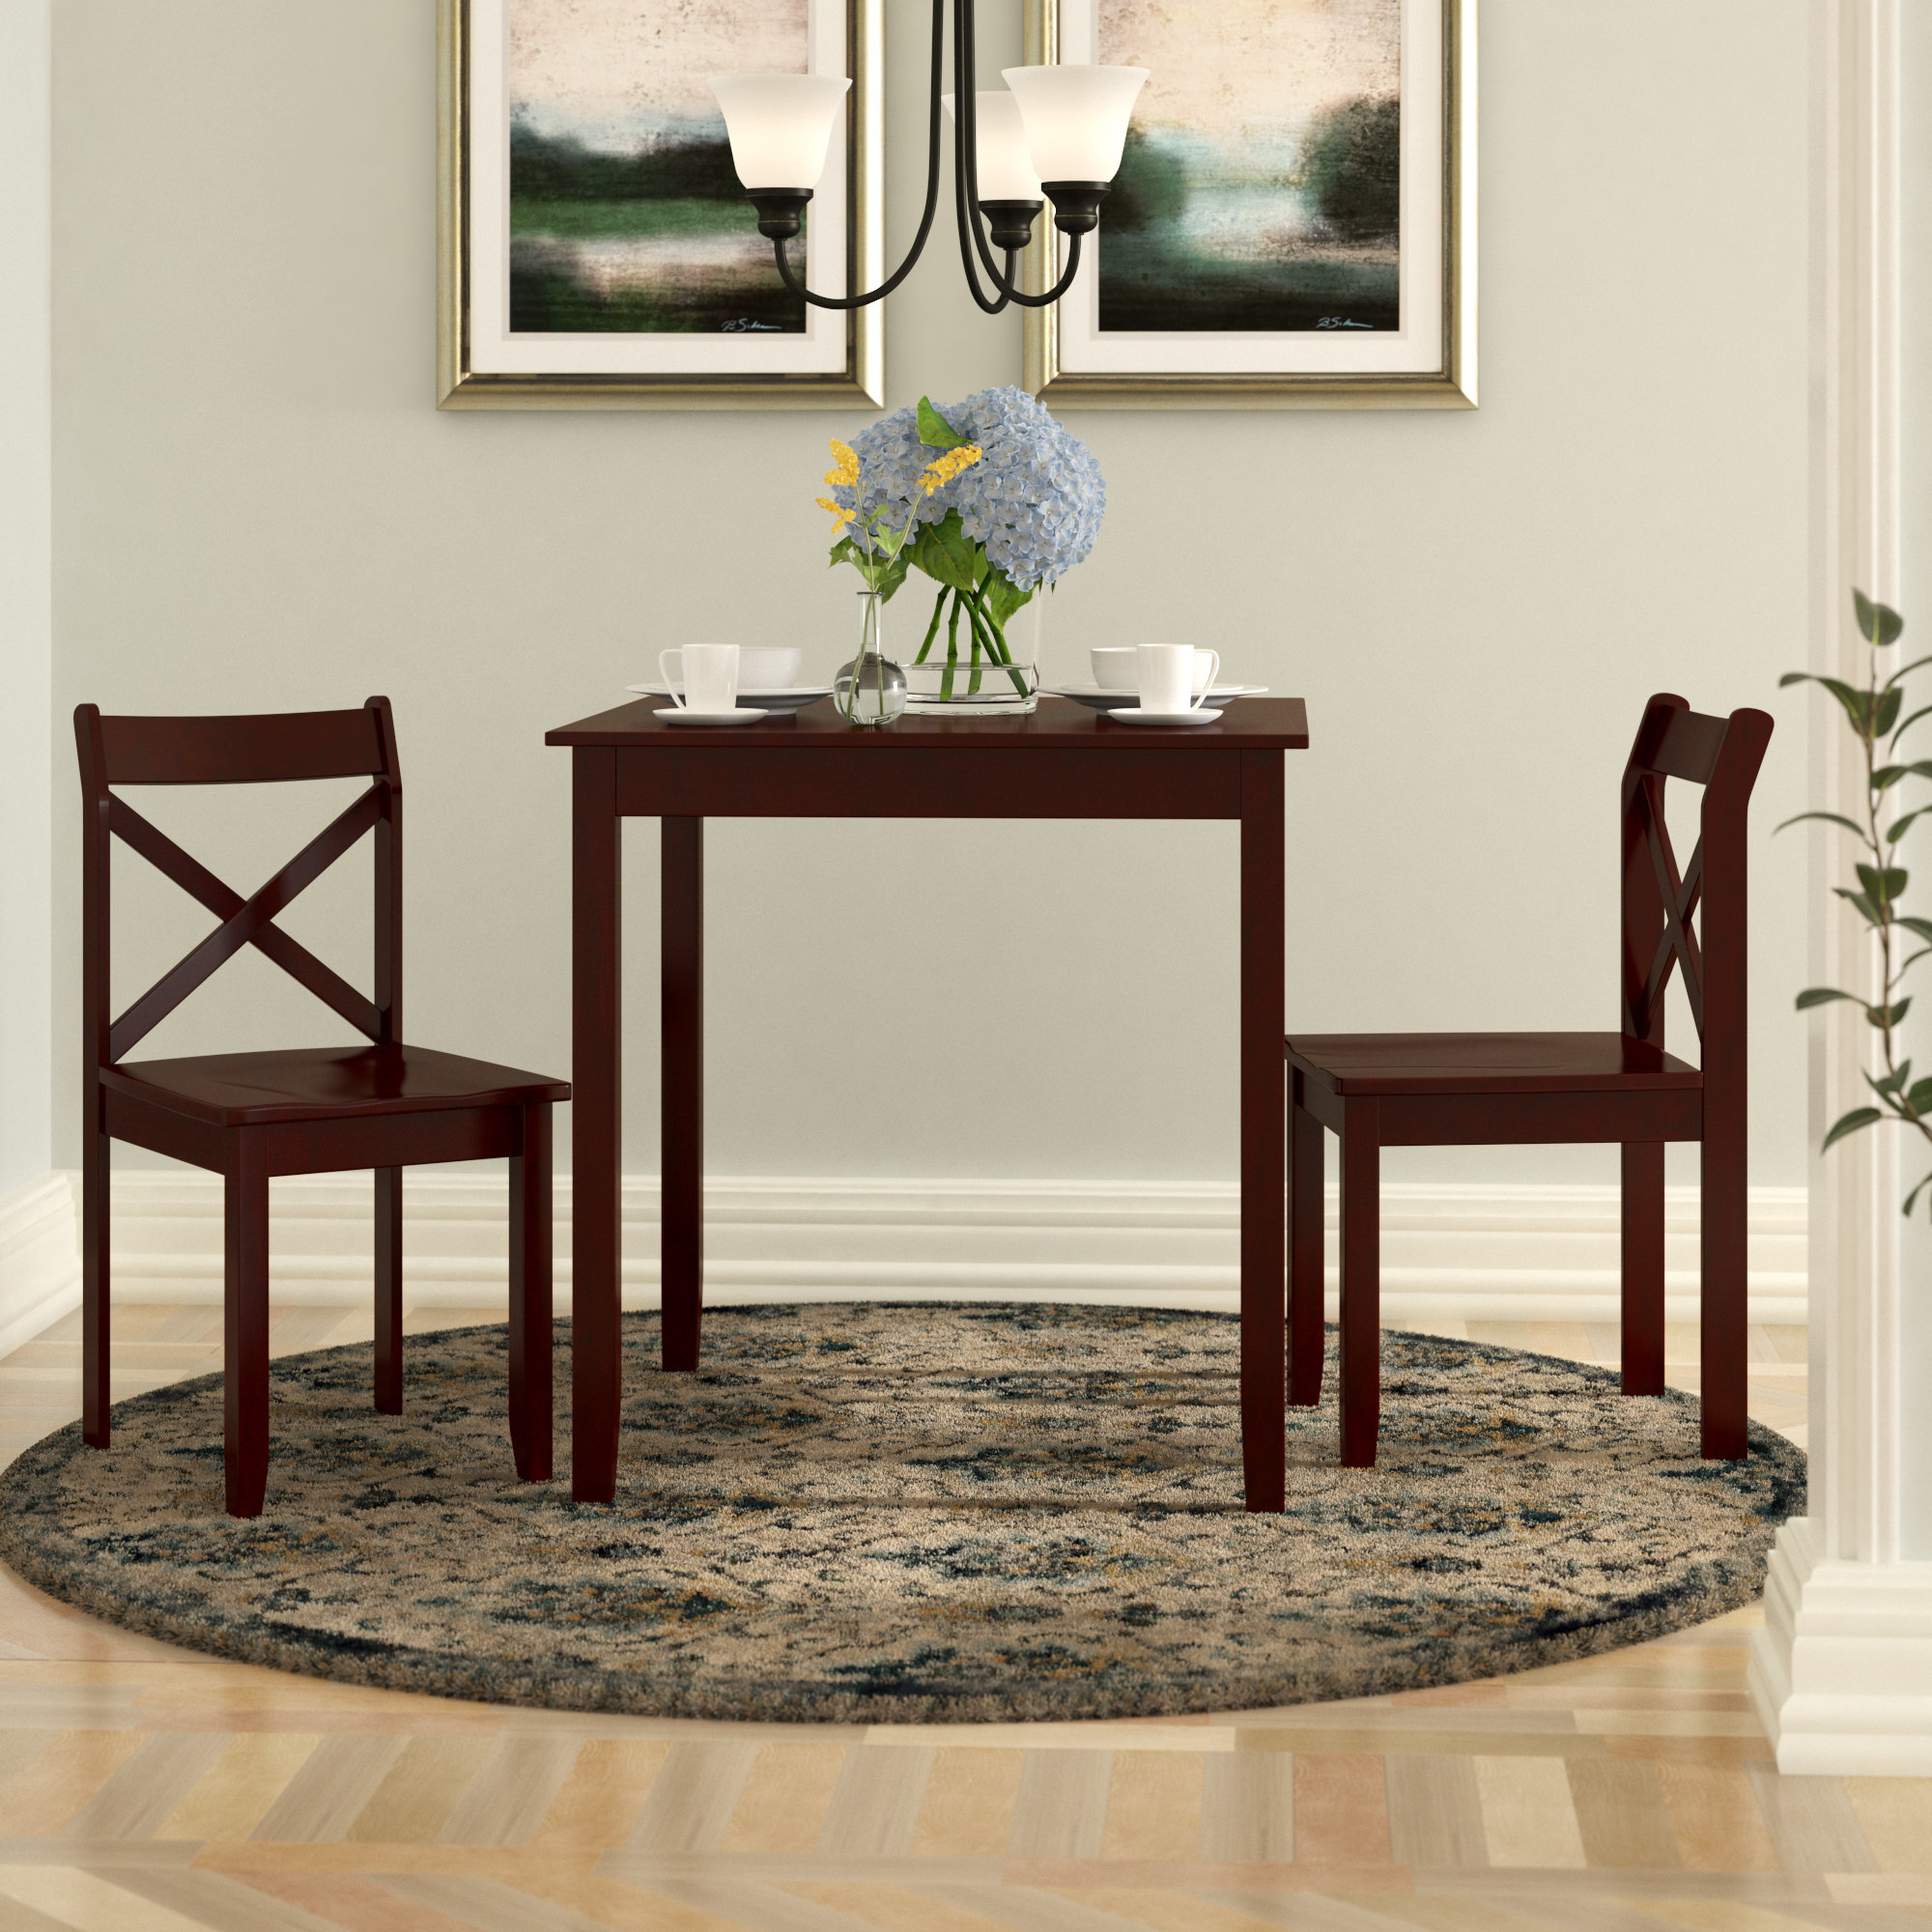 Flossmoor 3 Piece Dining Set Regarding Most Recently Released Moorehead 3 Piece Counter Height Dining Sets (View 6 of 20)